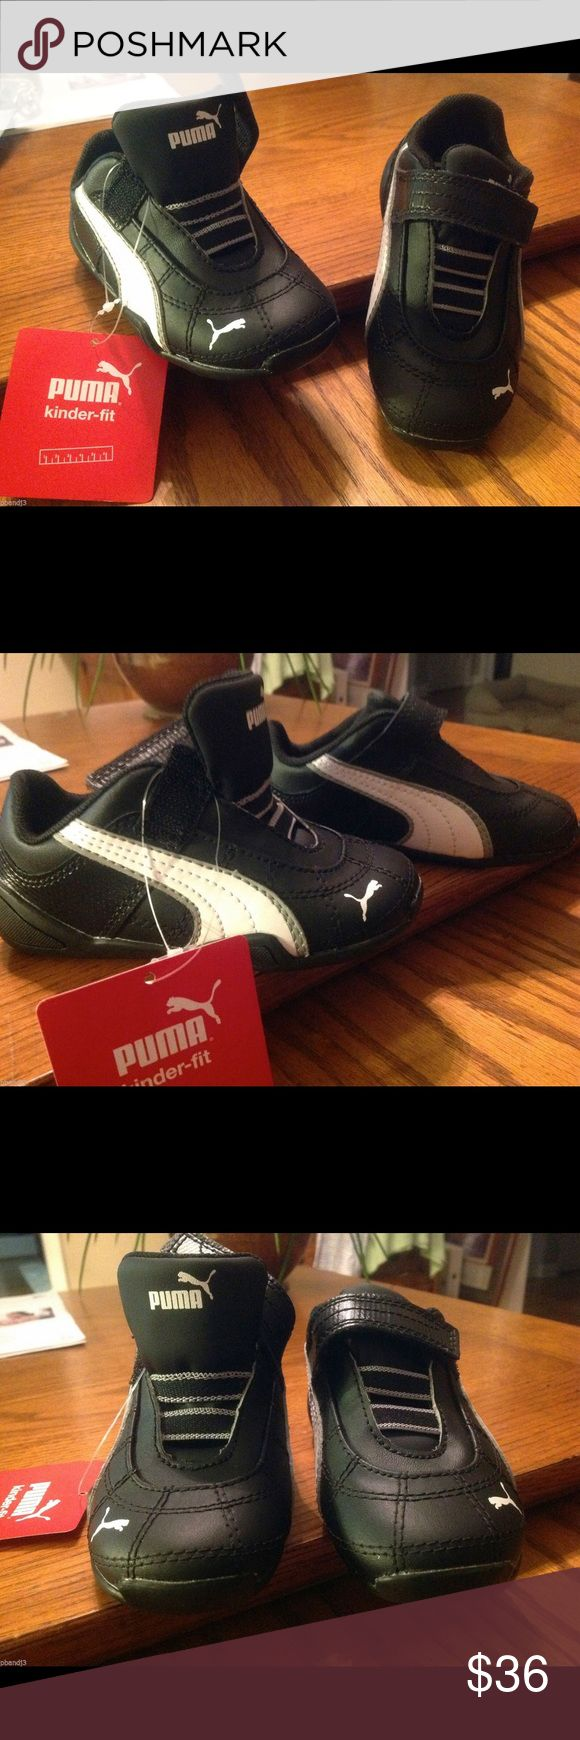 Puma Kinder-fit Sport Shoes Toddler 7 Puma Kinder-Fit Athletic Shoes. Toddler size 7  Just like the big boys shoes. Wide spacing for little toes. Velcro closing strap. Leather uppers with rubber soles and textile lining. Puma Shoes Sneakers